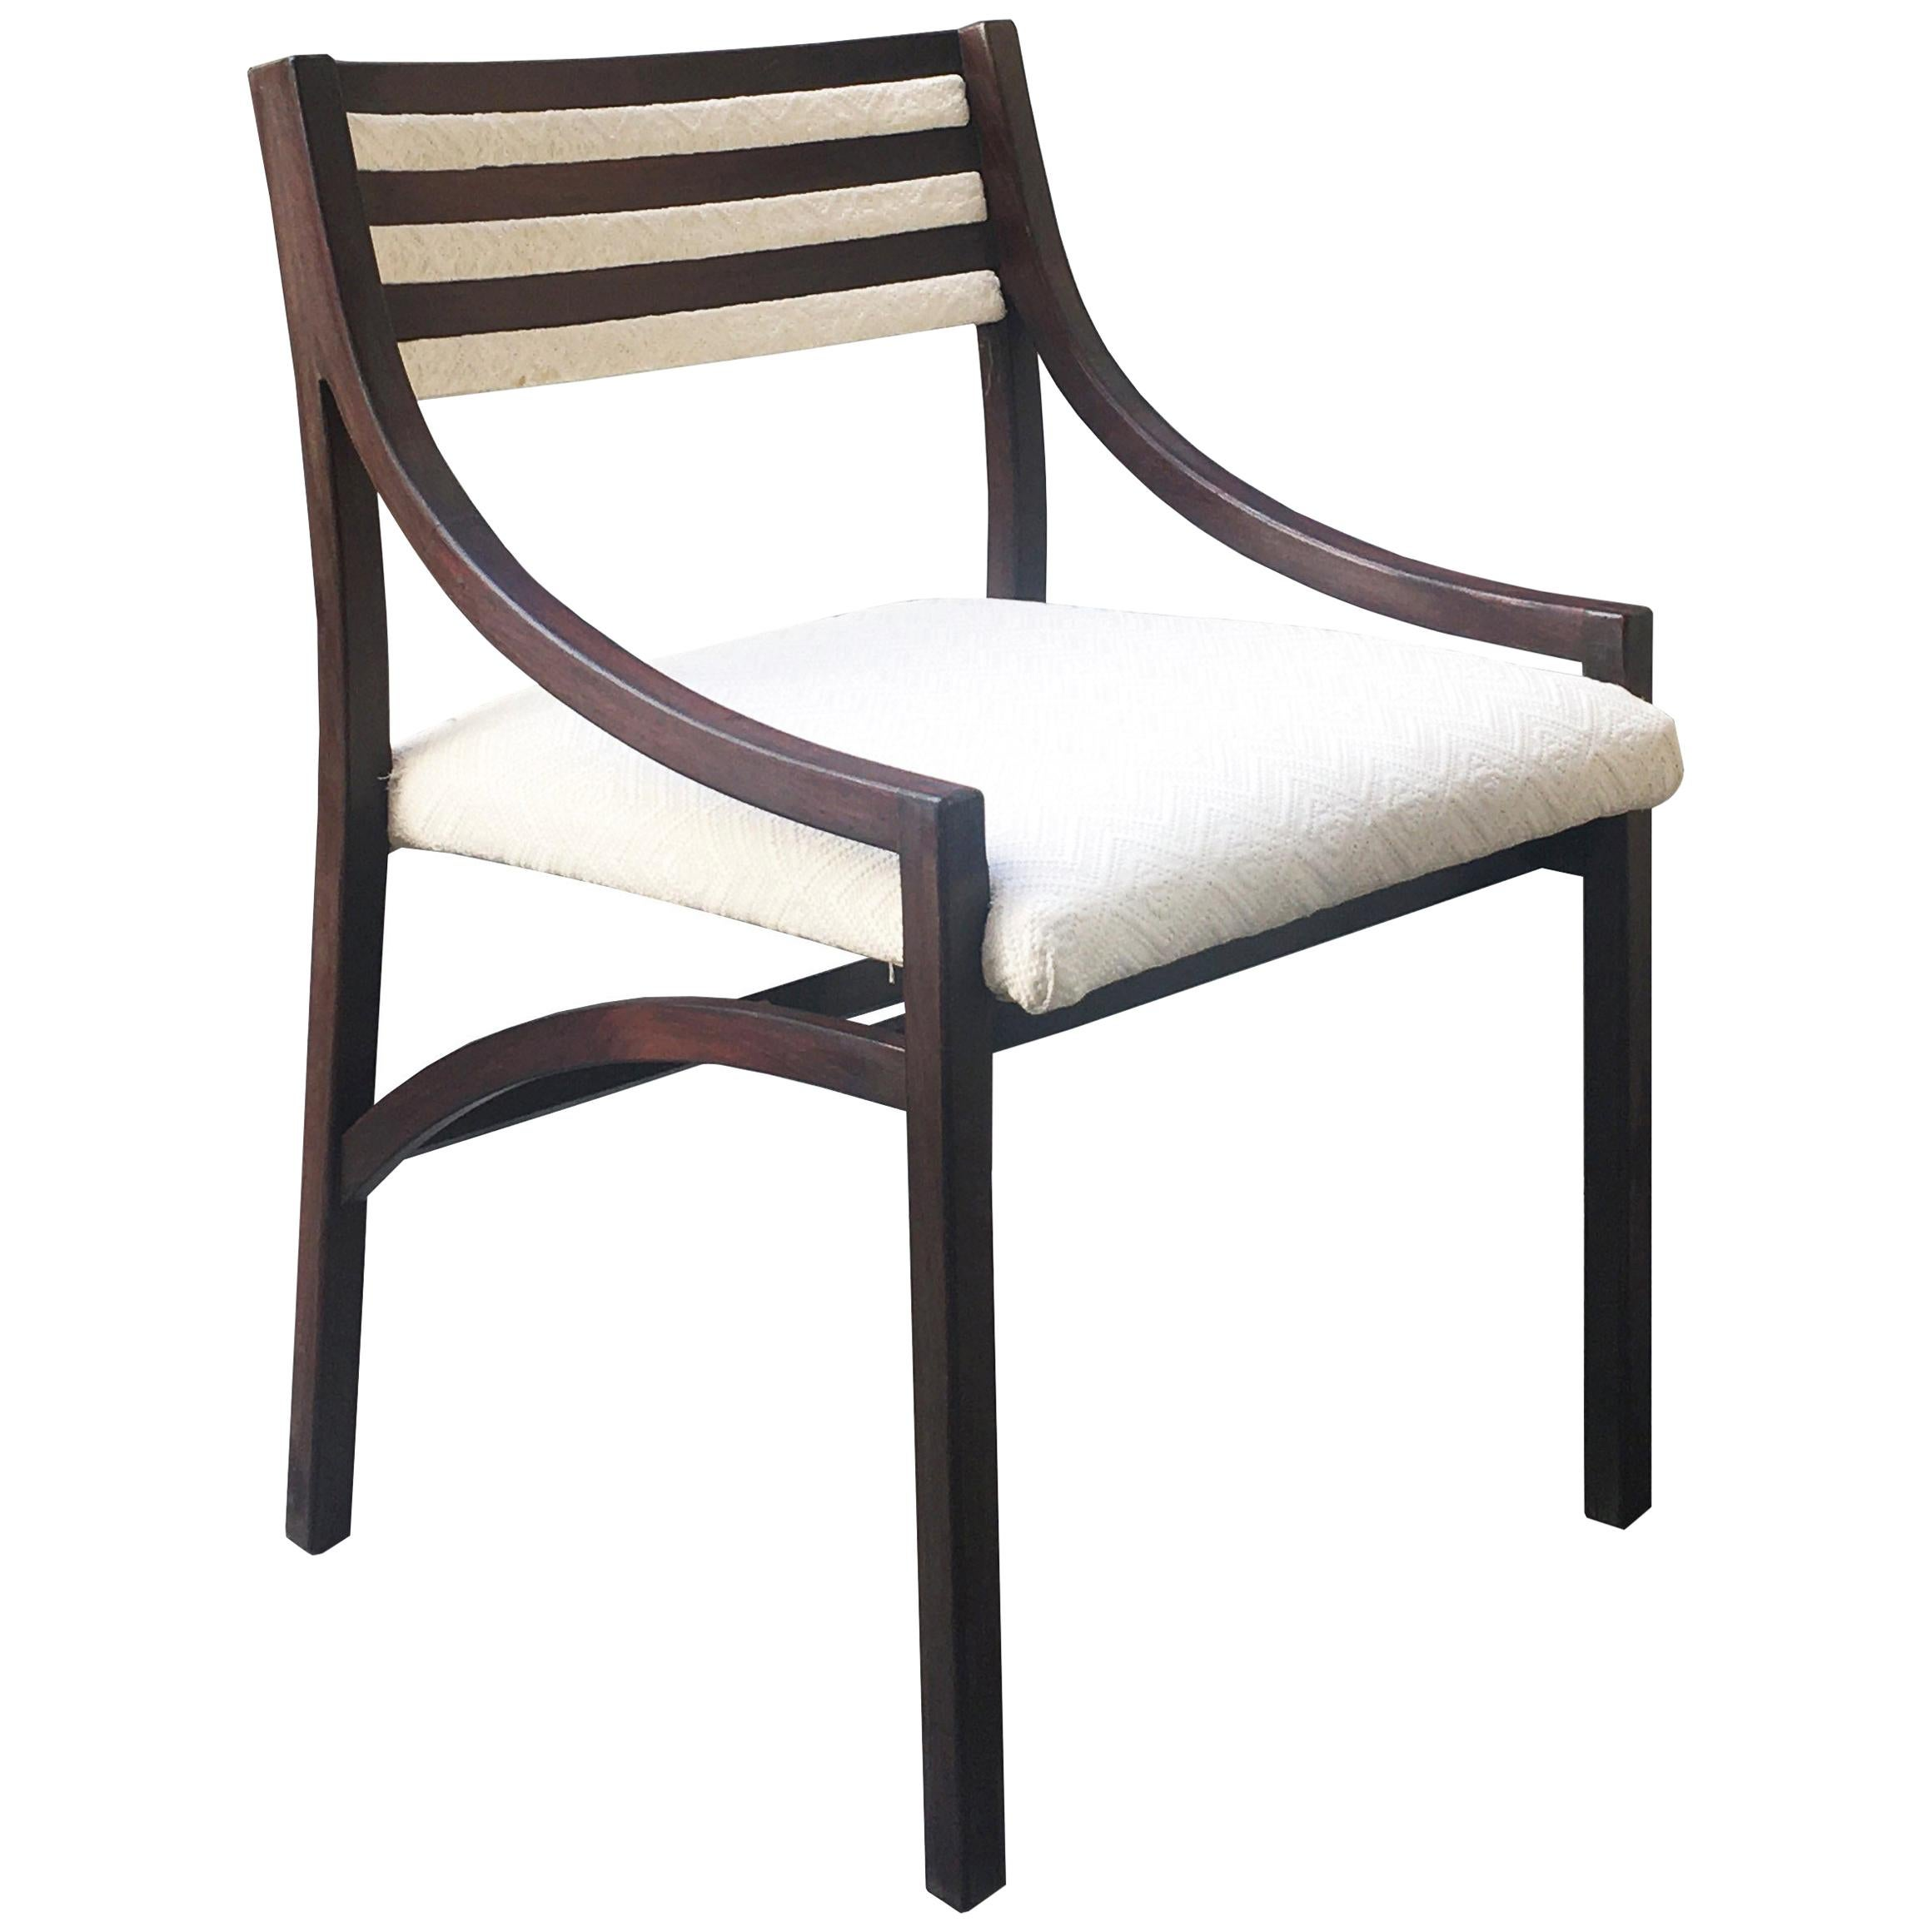 Ico Parisi for Cassina Mod.110 Dining Chair